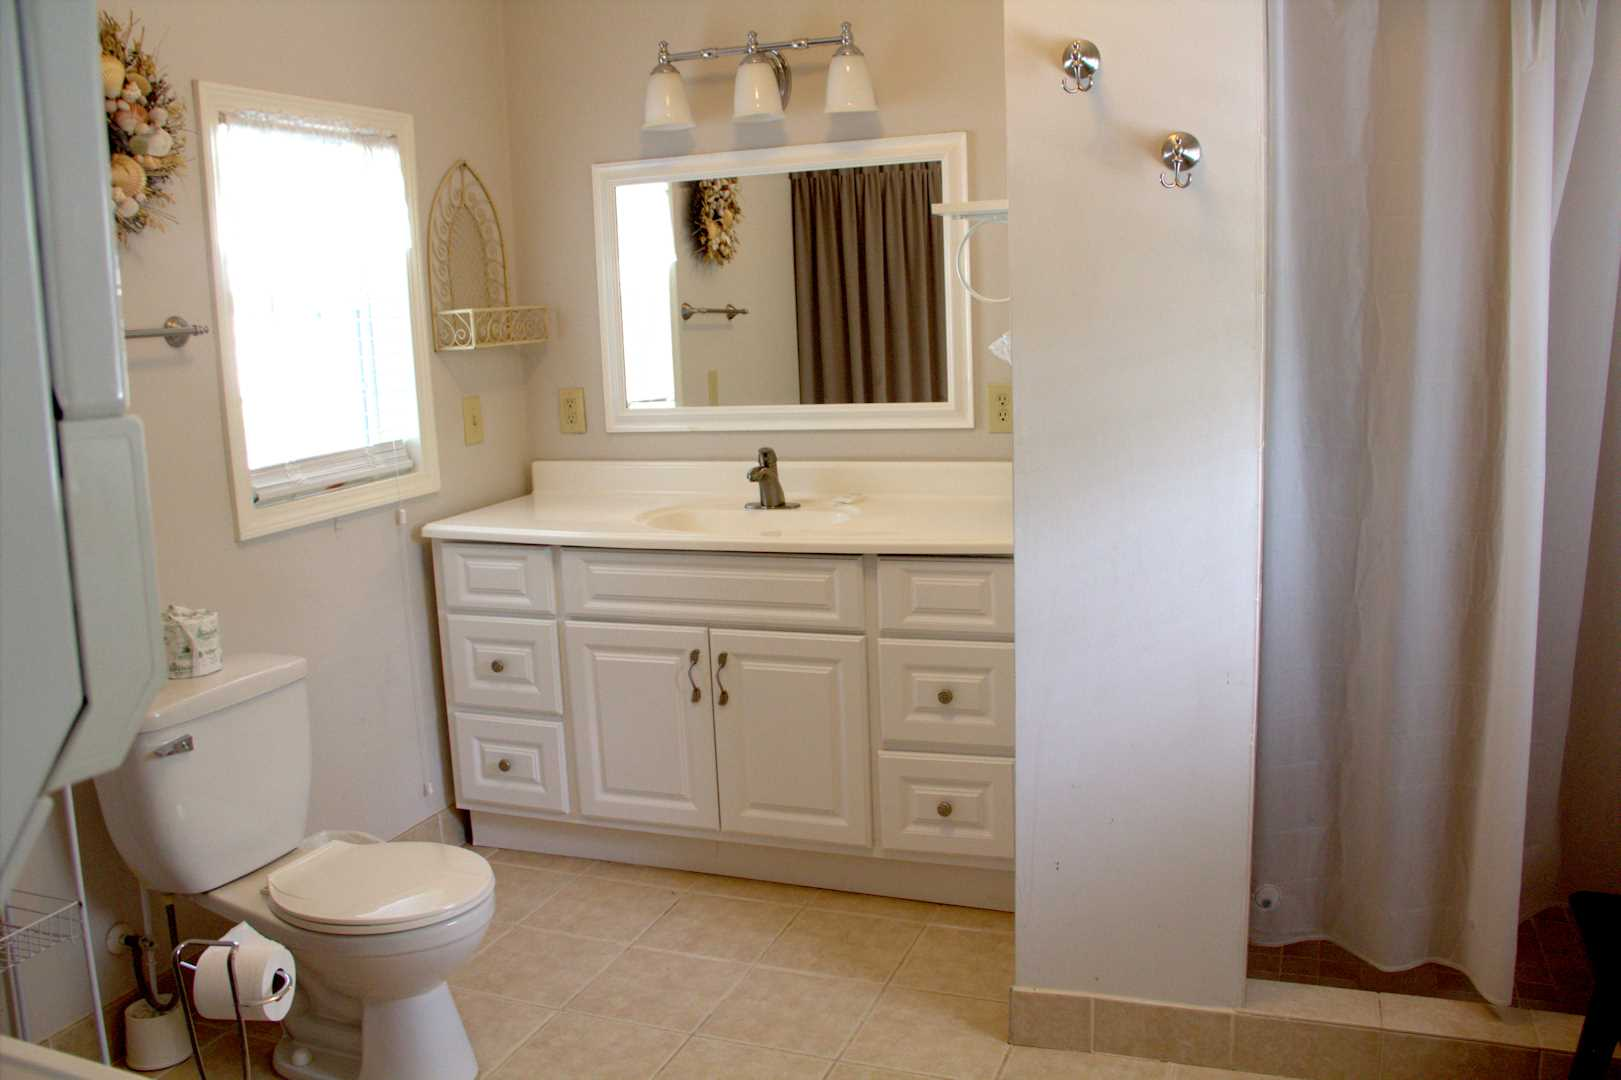 Bathroom off the family room with shower